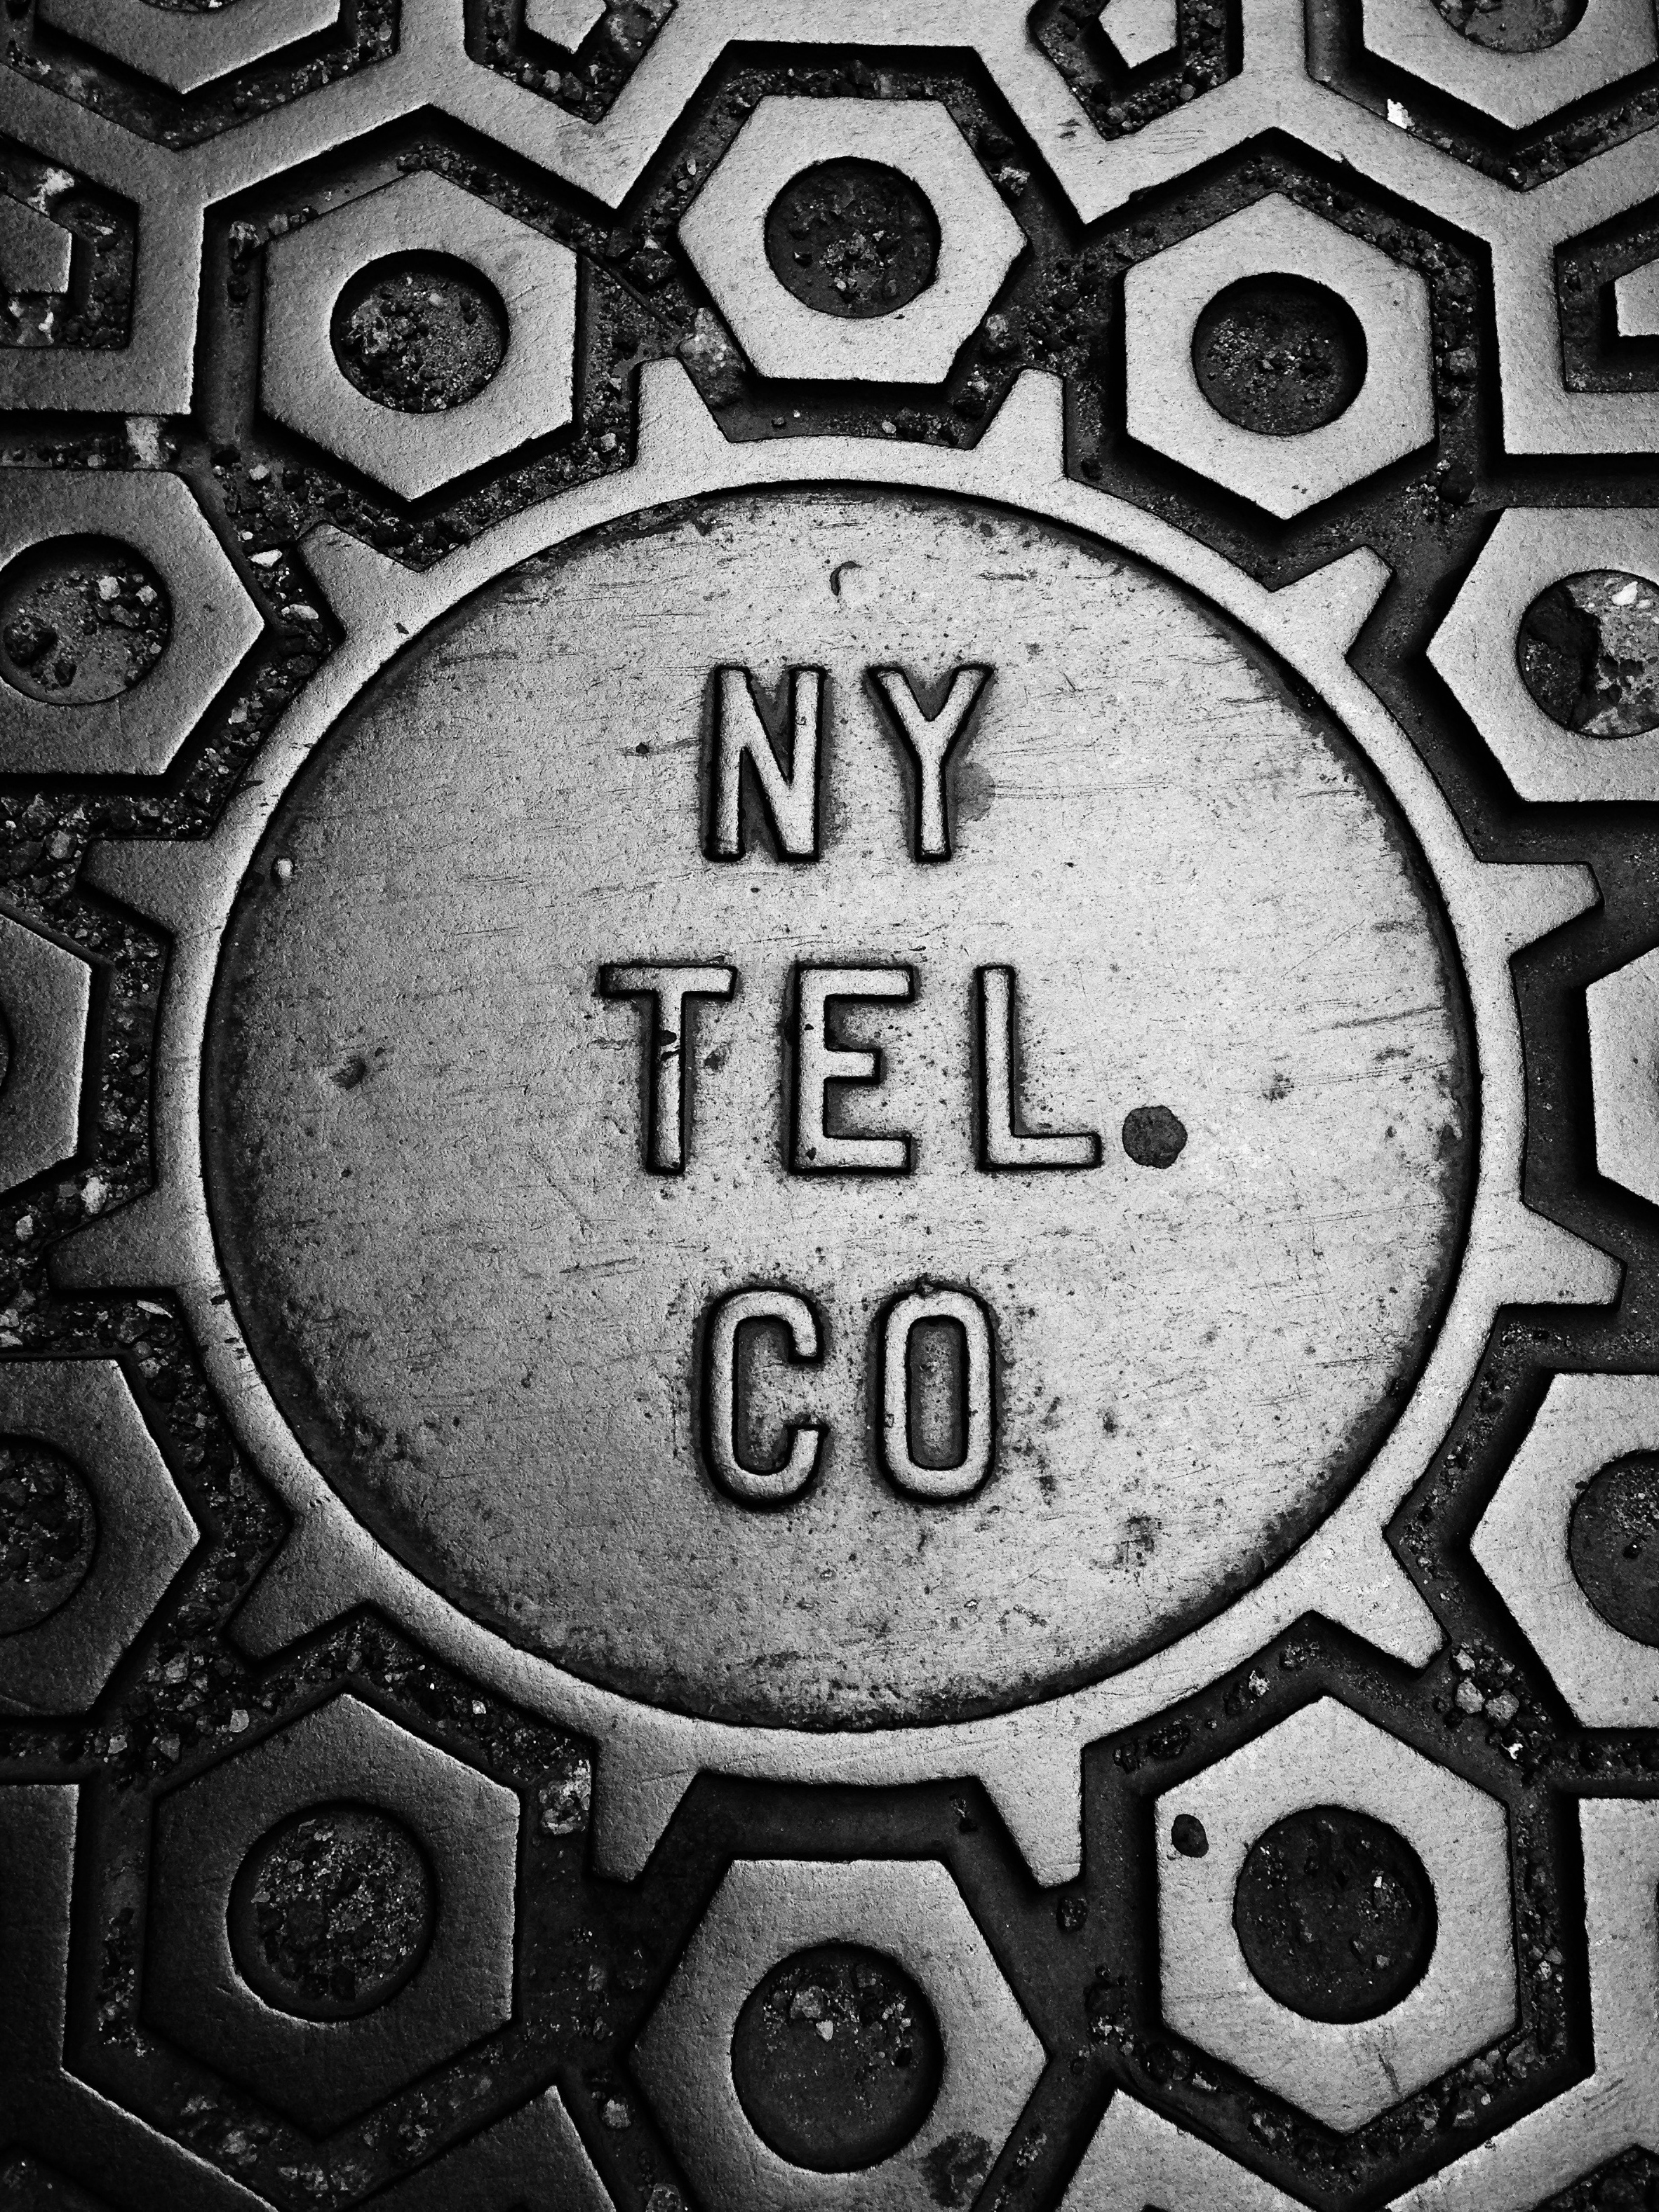 New York City manhole